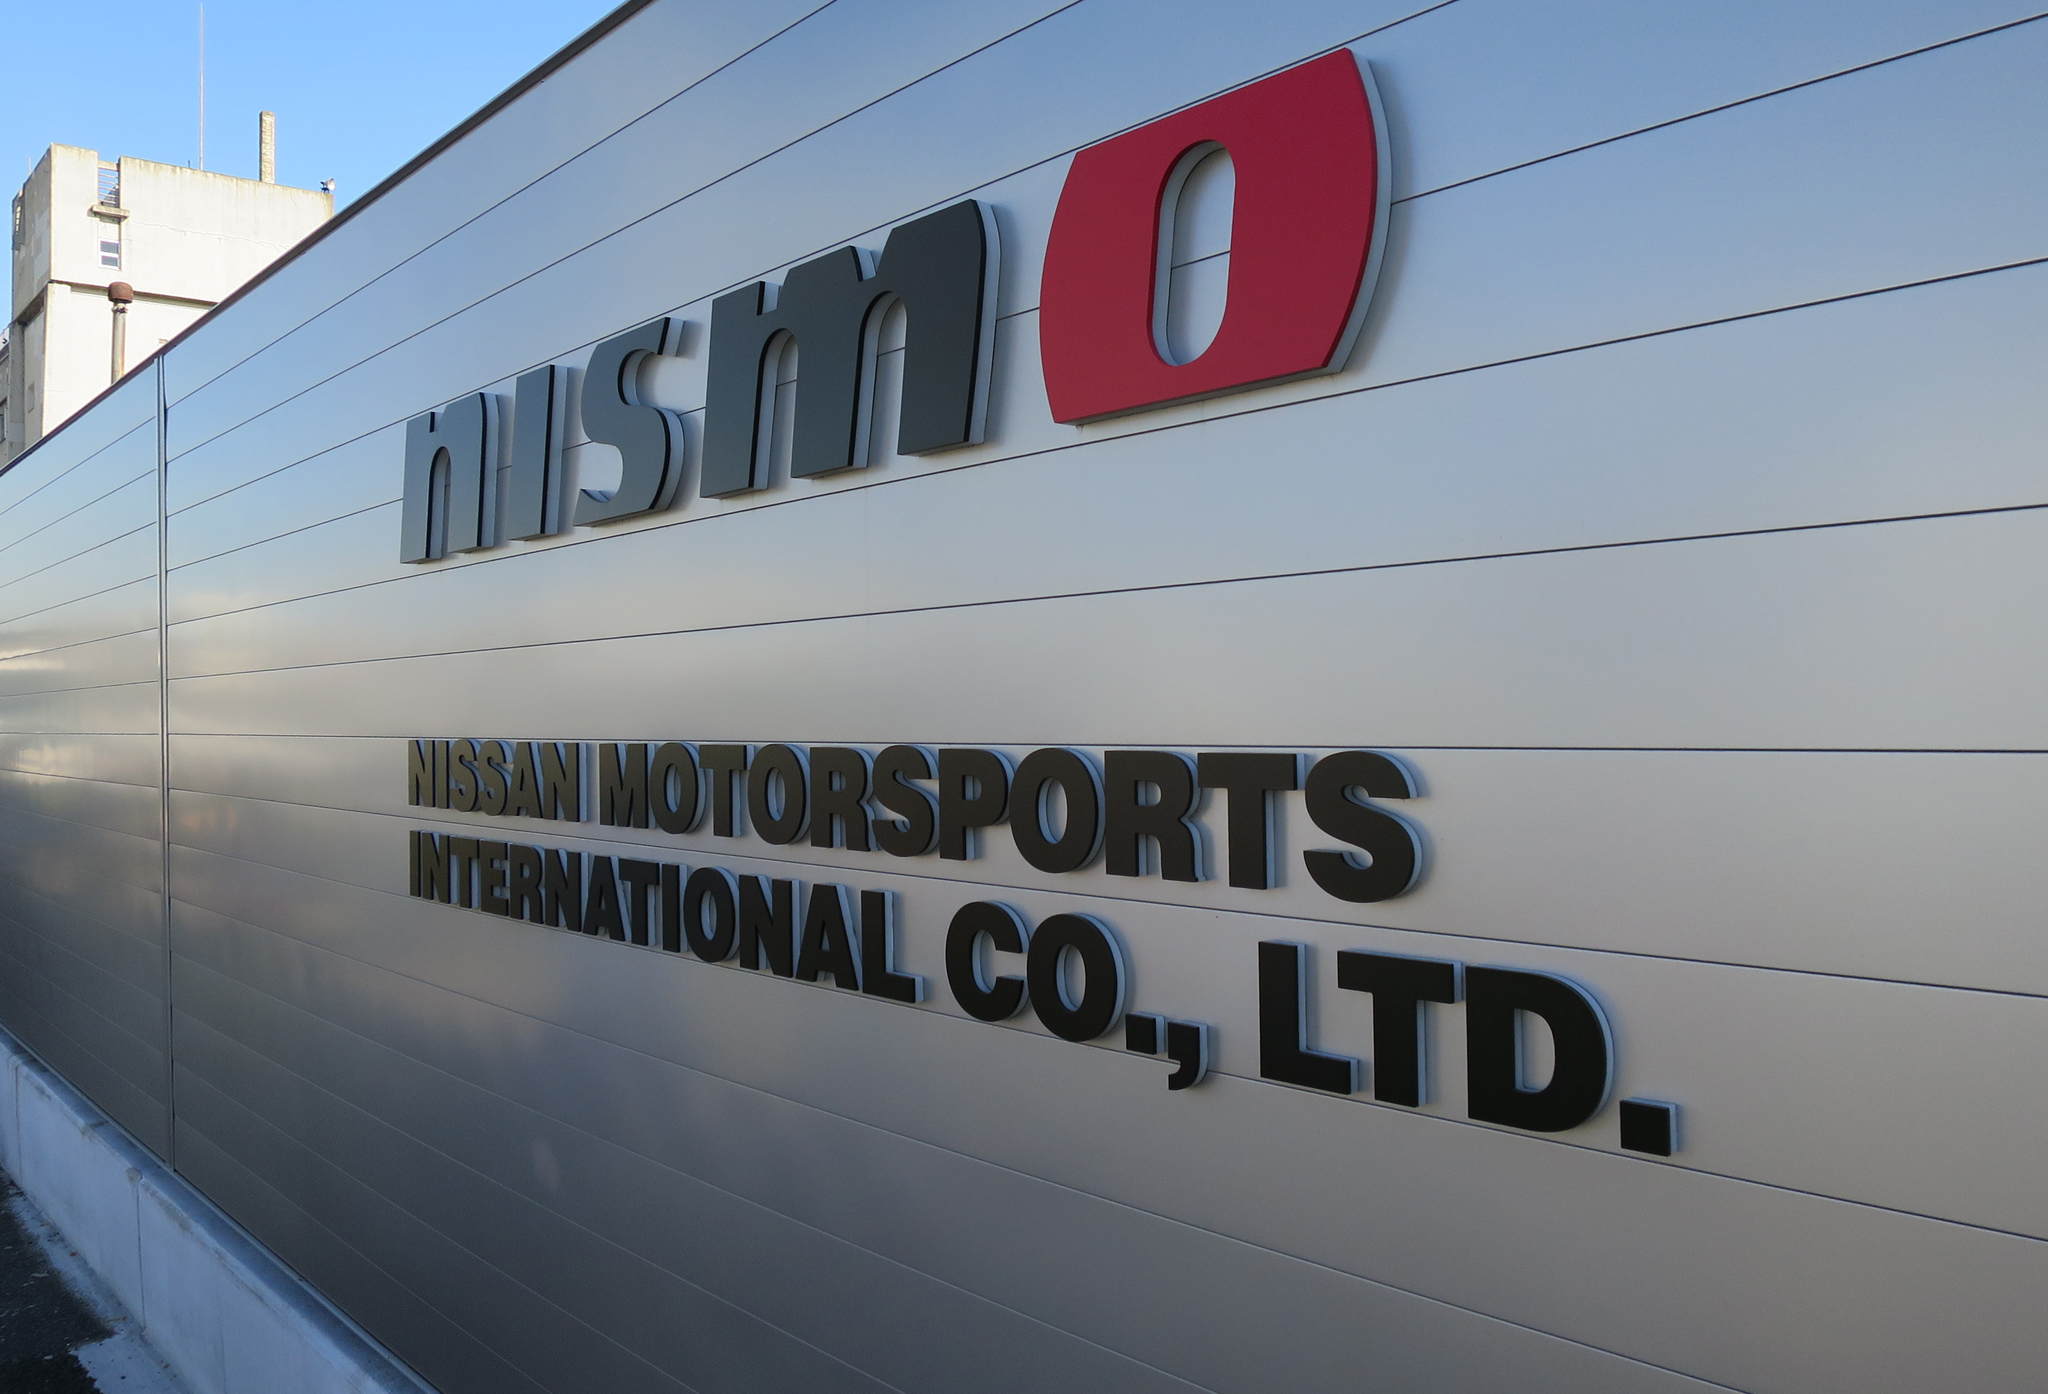 A Visit to Nissan Motorsports Nismo Factory Speed Shop